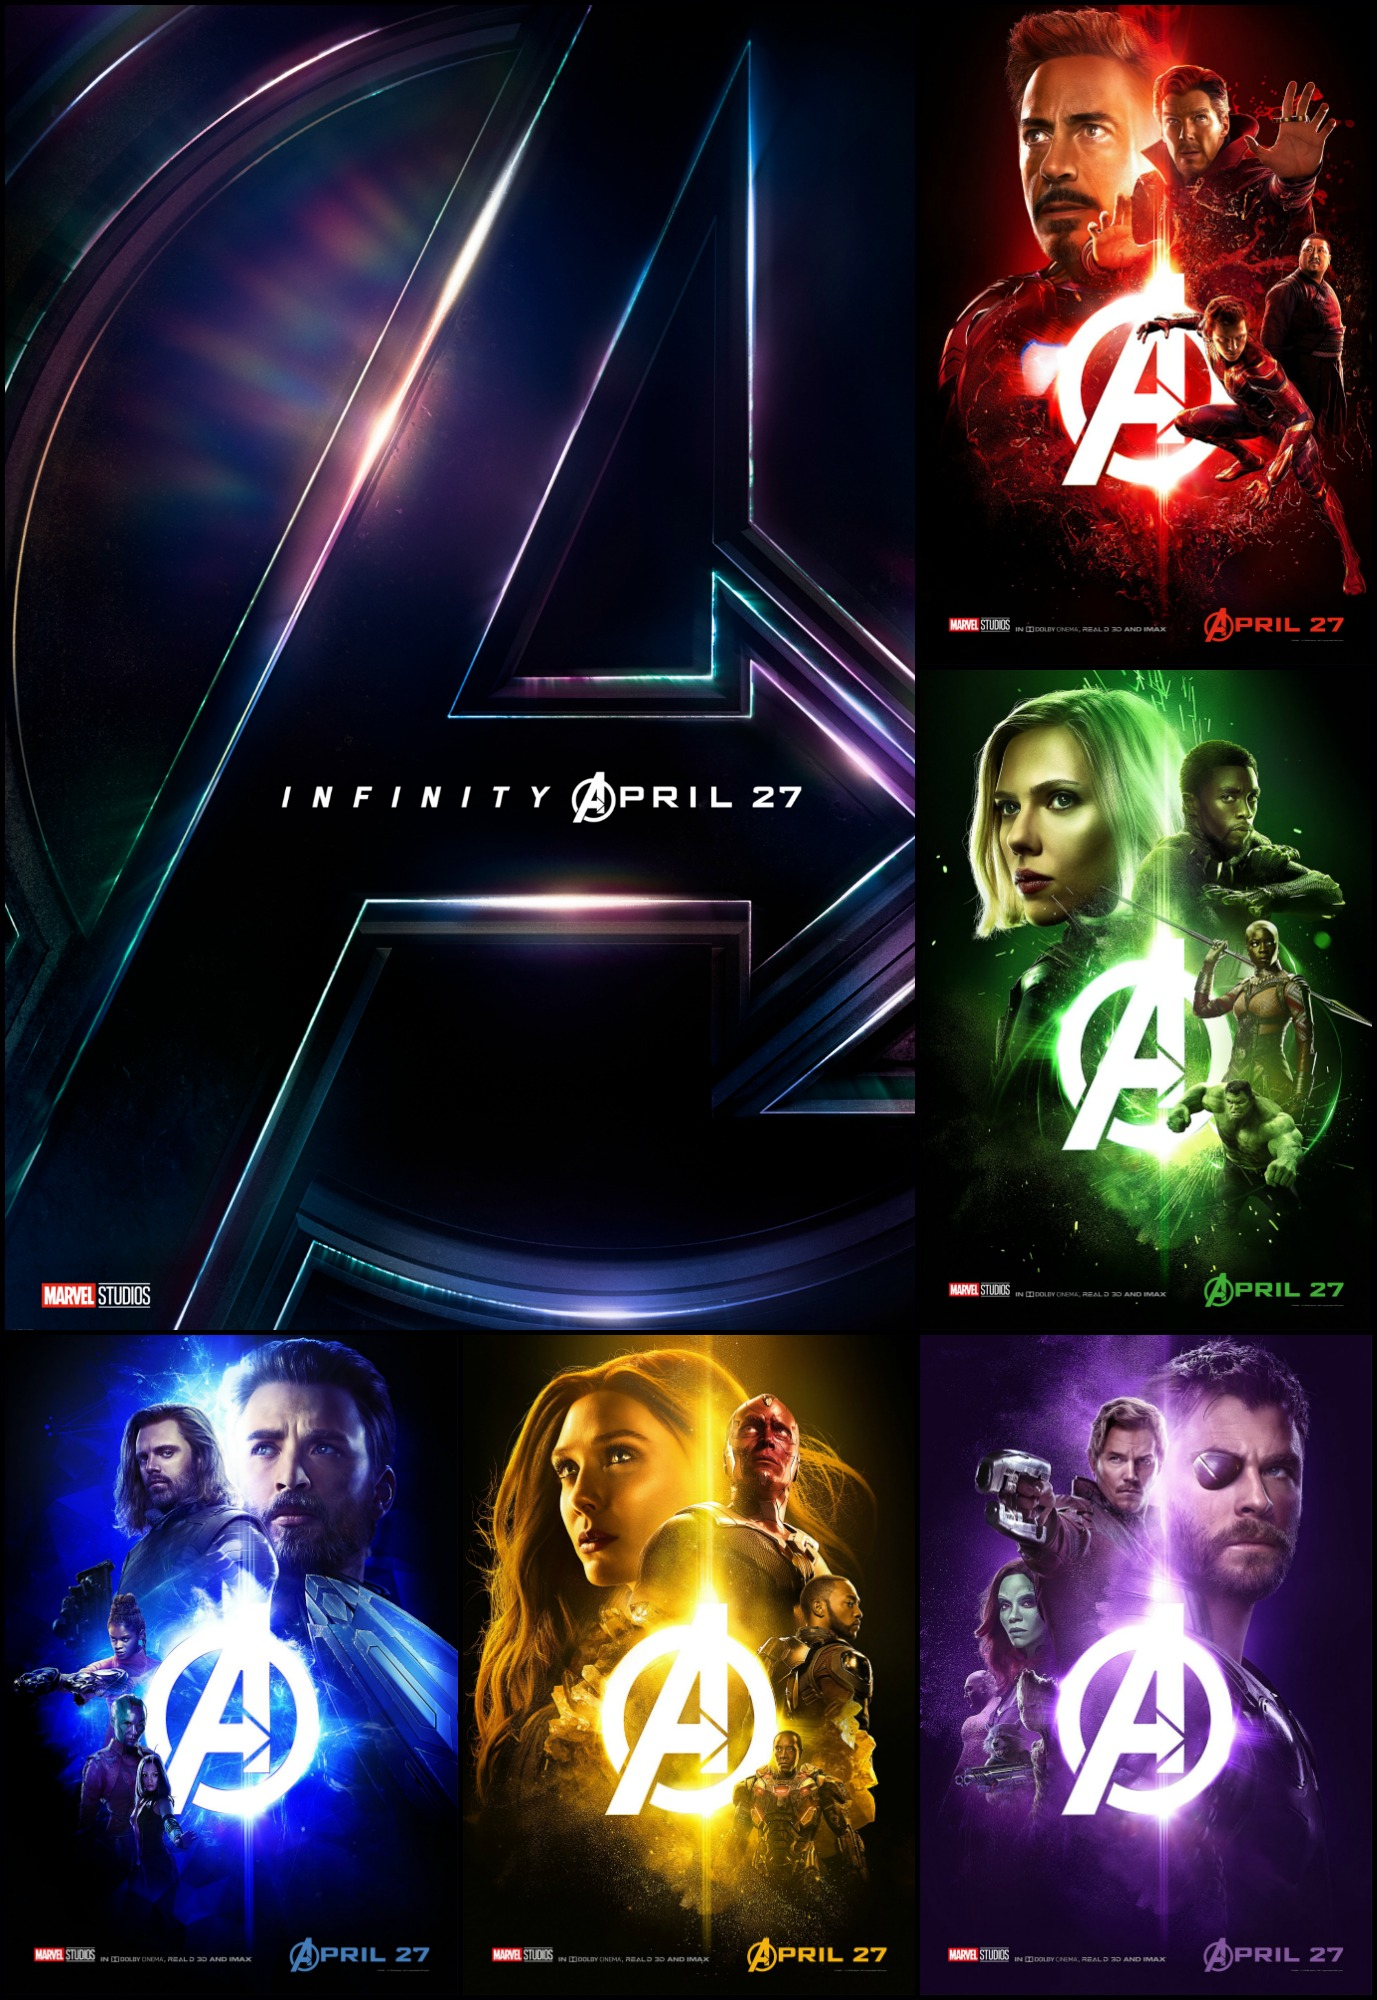 new* character posters from marvel studios' avengers: infinity war